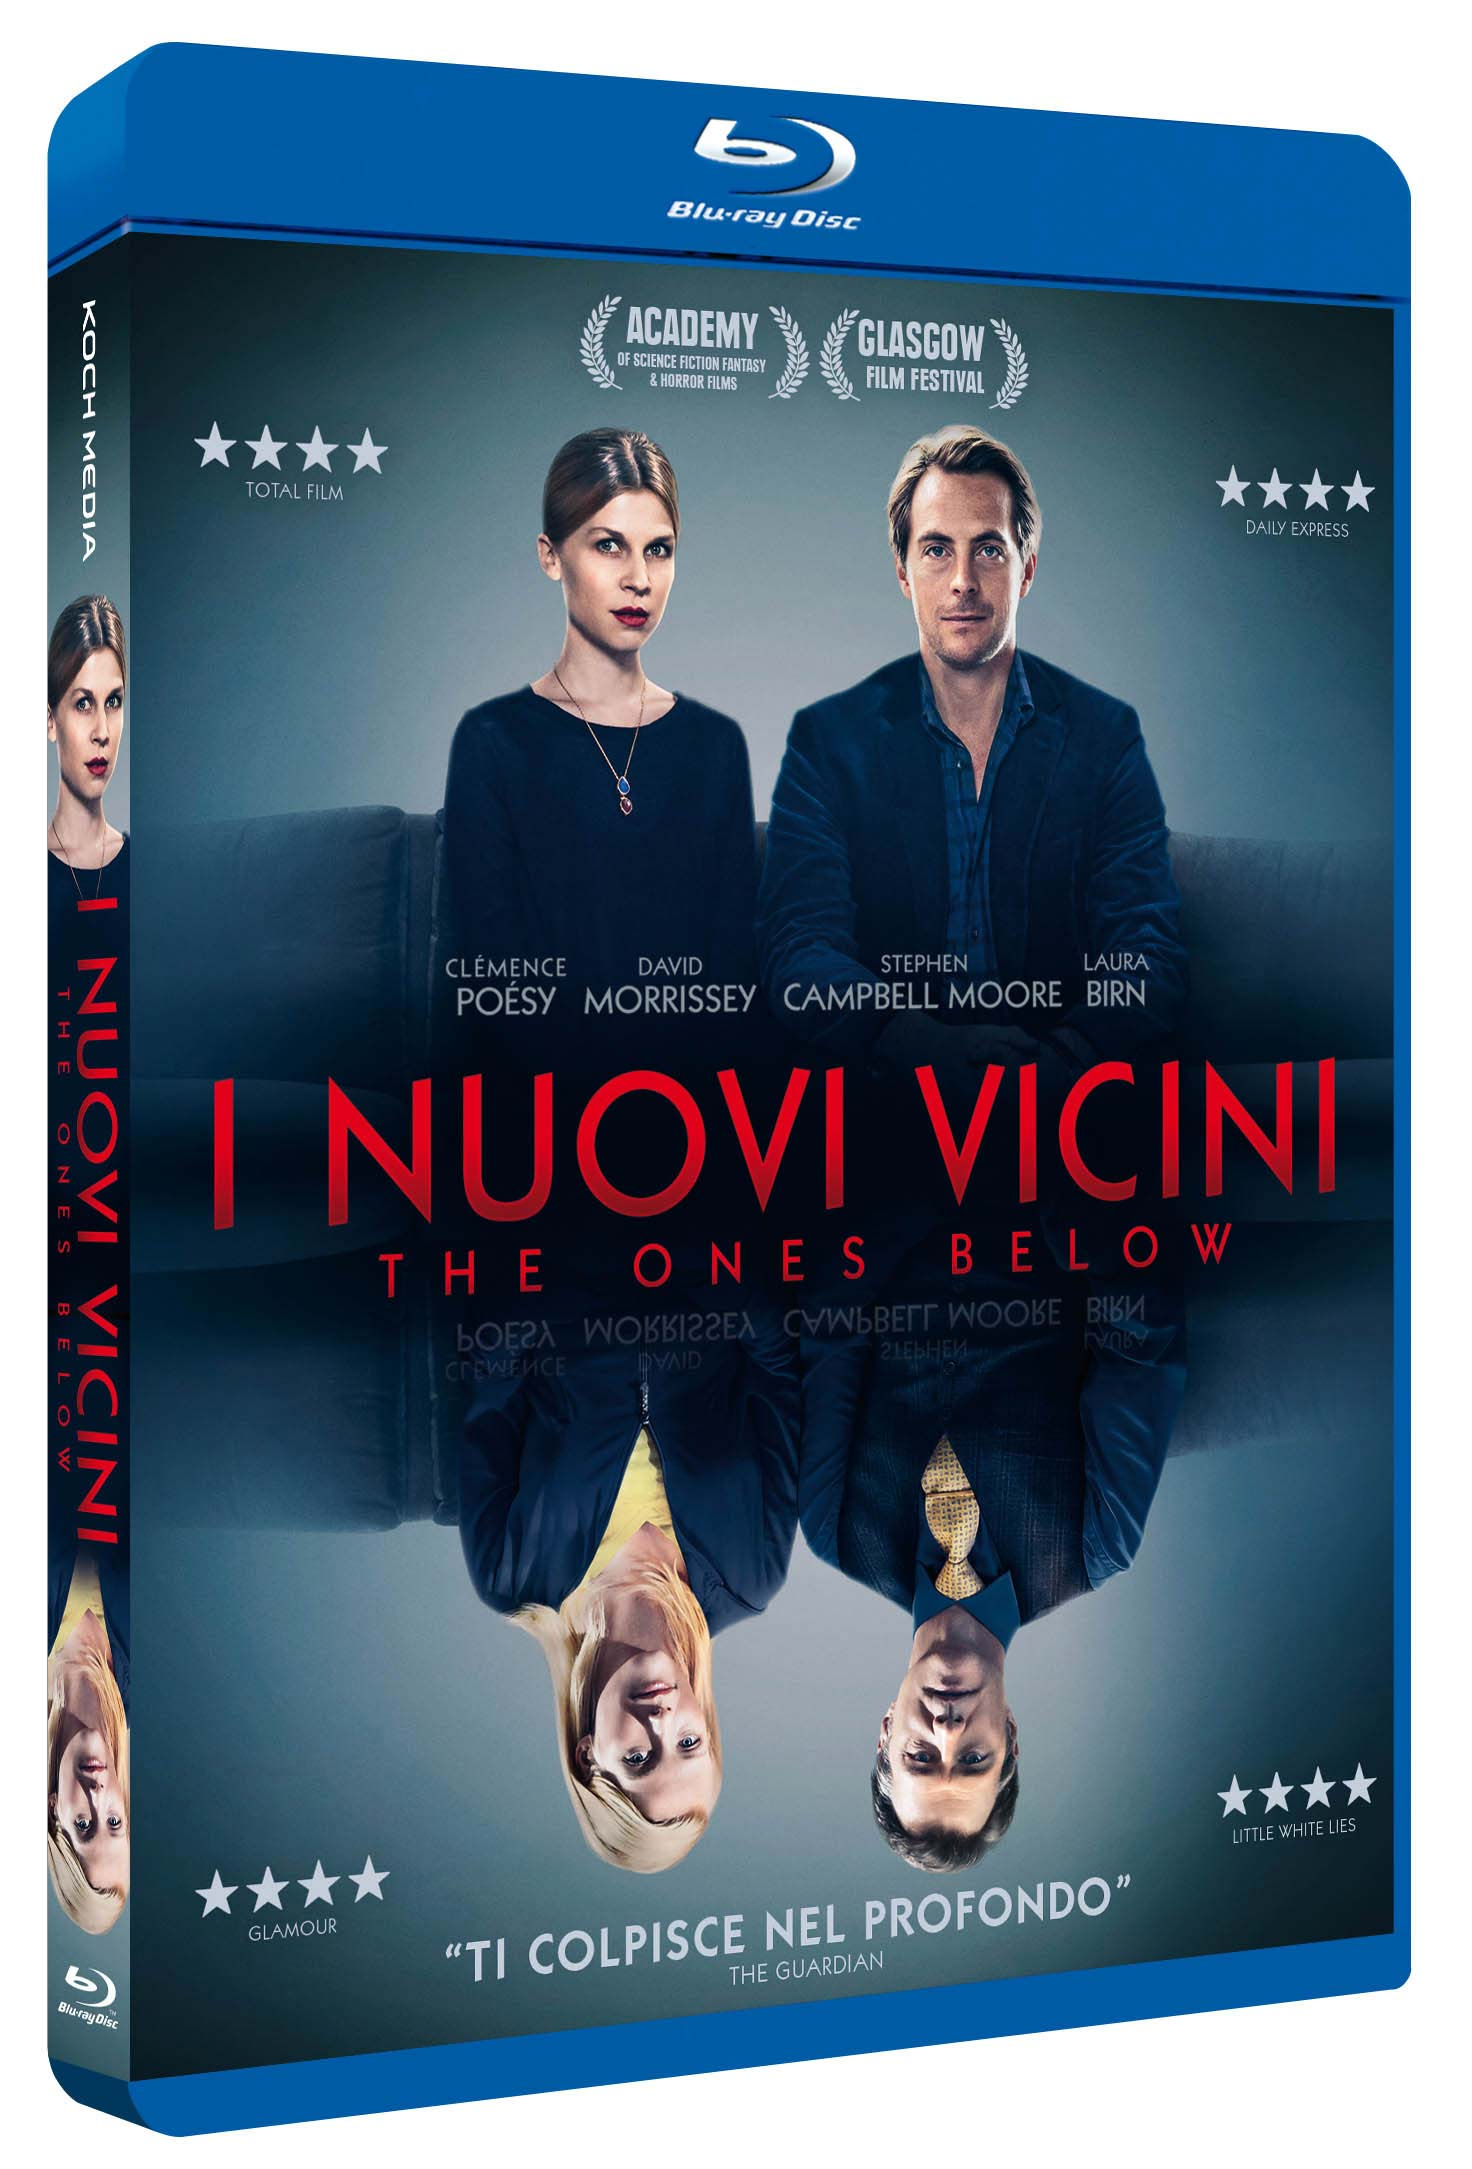 I NUOVI VICINI - THE ONES BELOW - BLU RAY